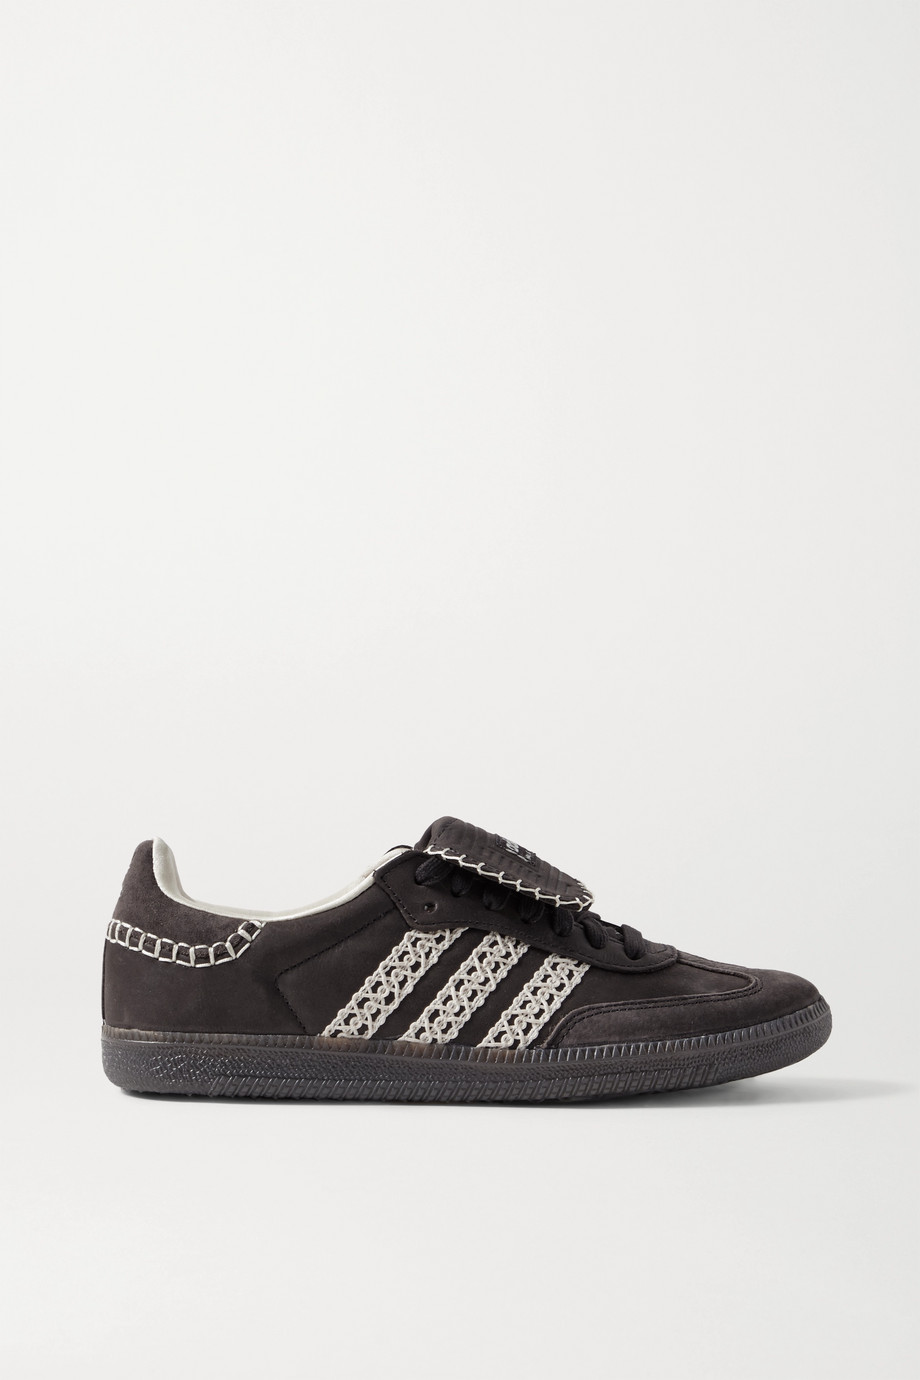 adidas Originals + Wales Bonner Samba crochet-trimmed suede and leather sneakers